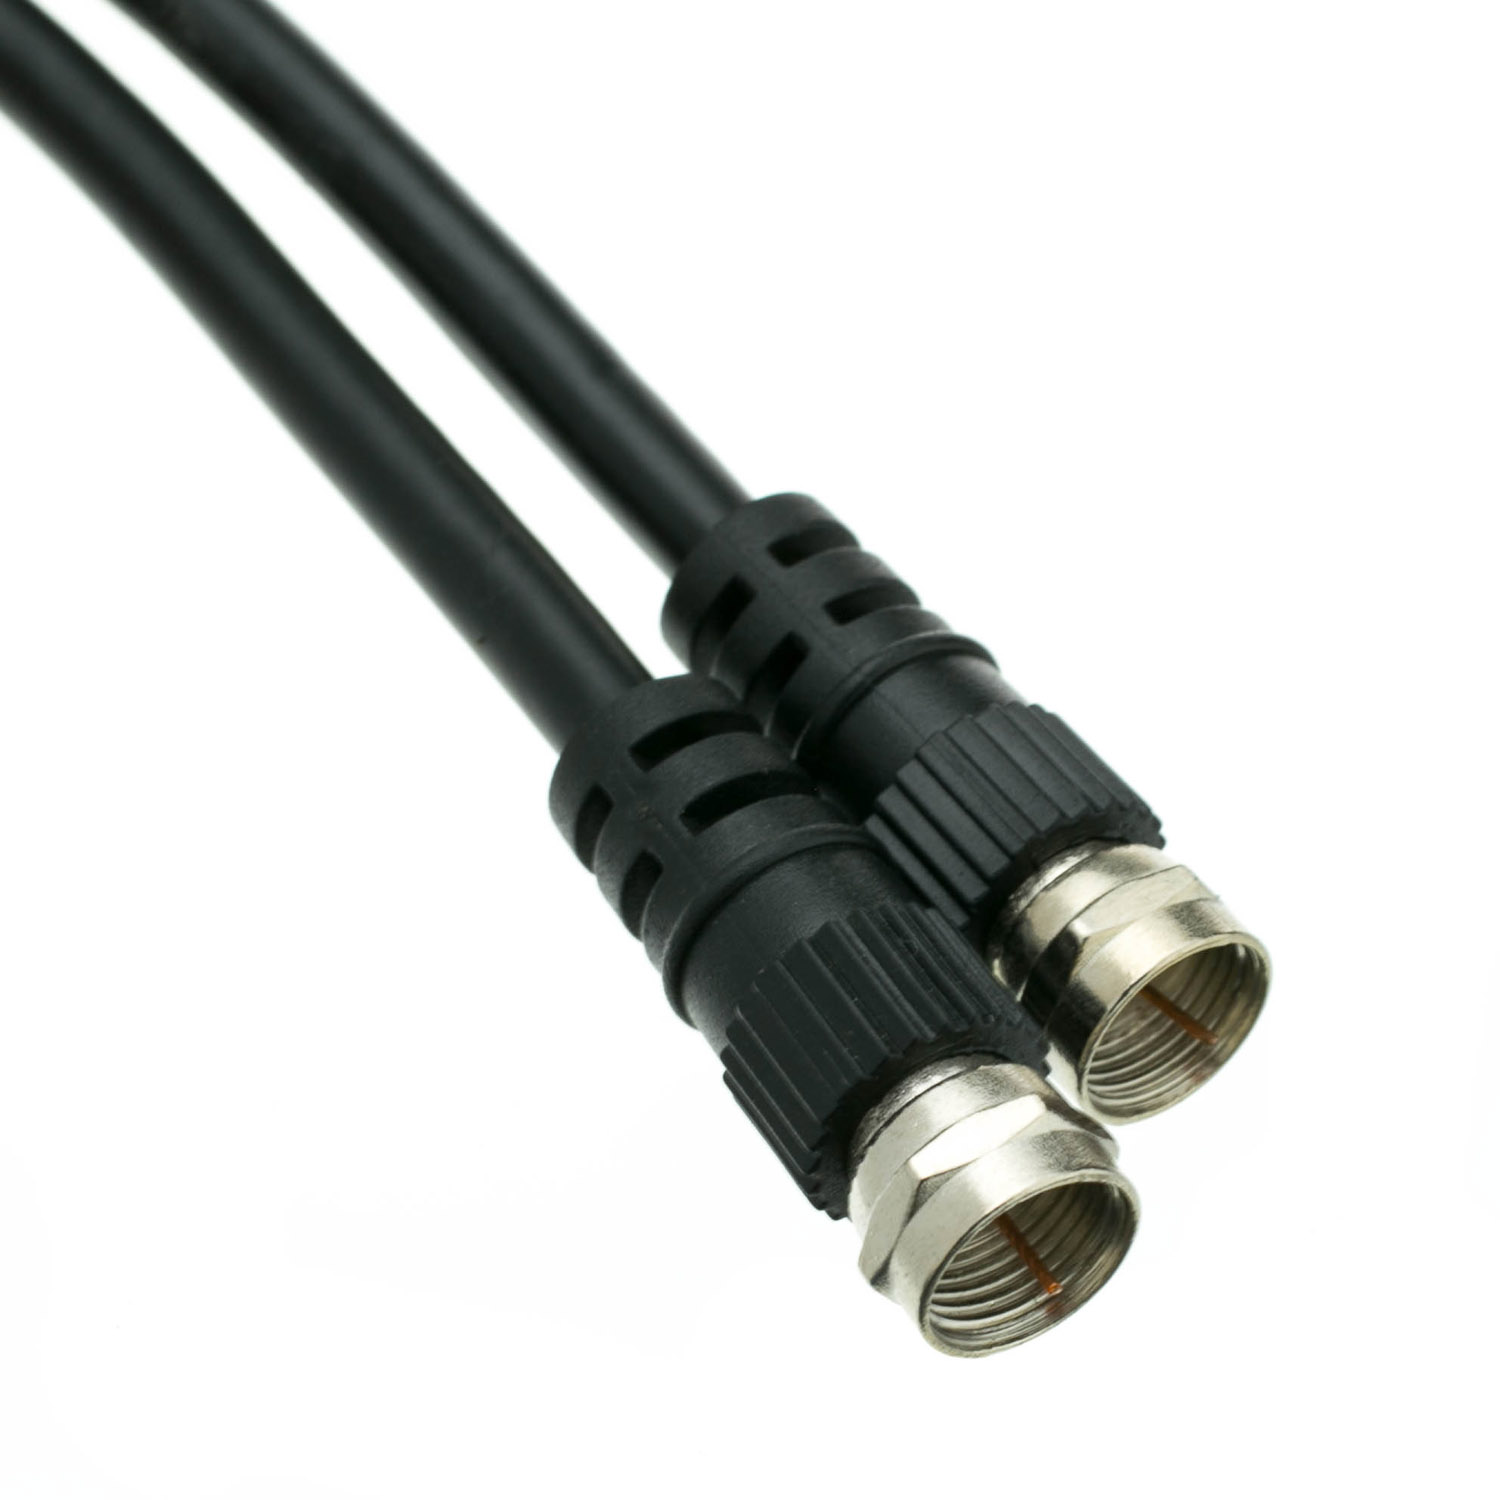 Offex Wholesale F-Pin/RG59 Coaxial Cable, 6 ft, Black [Electronics]